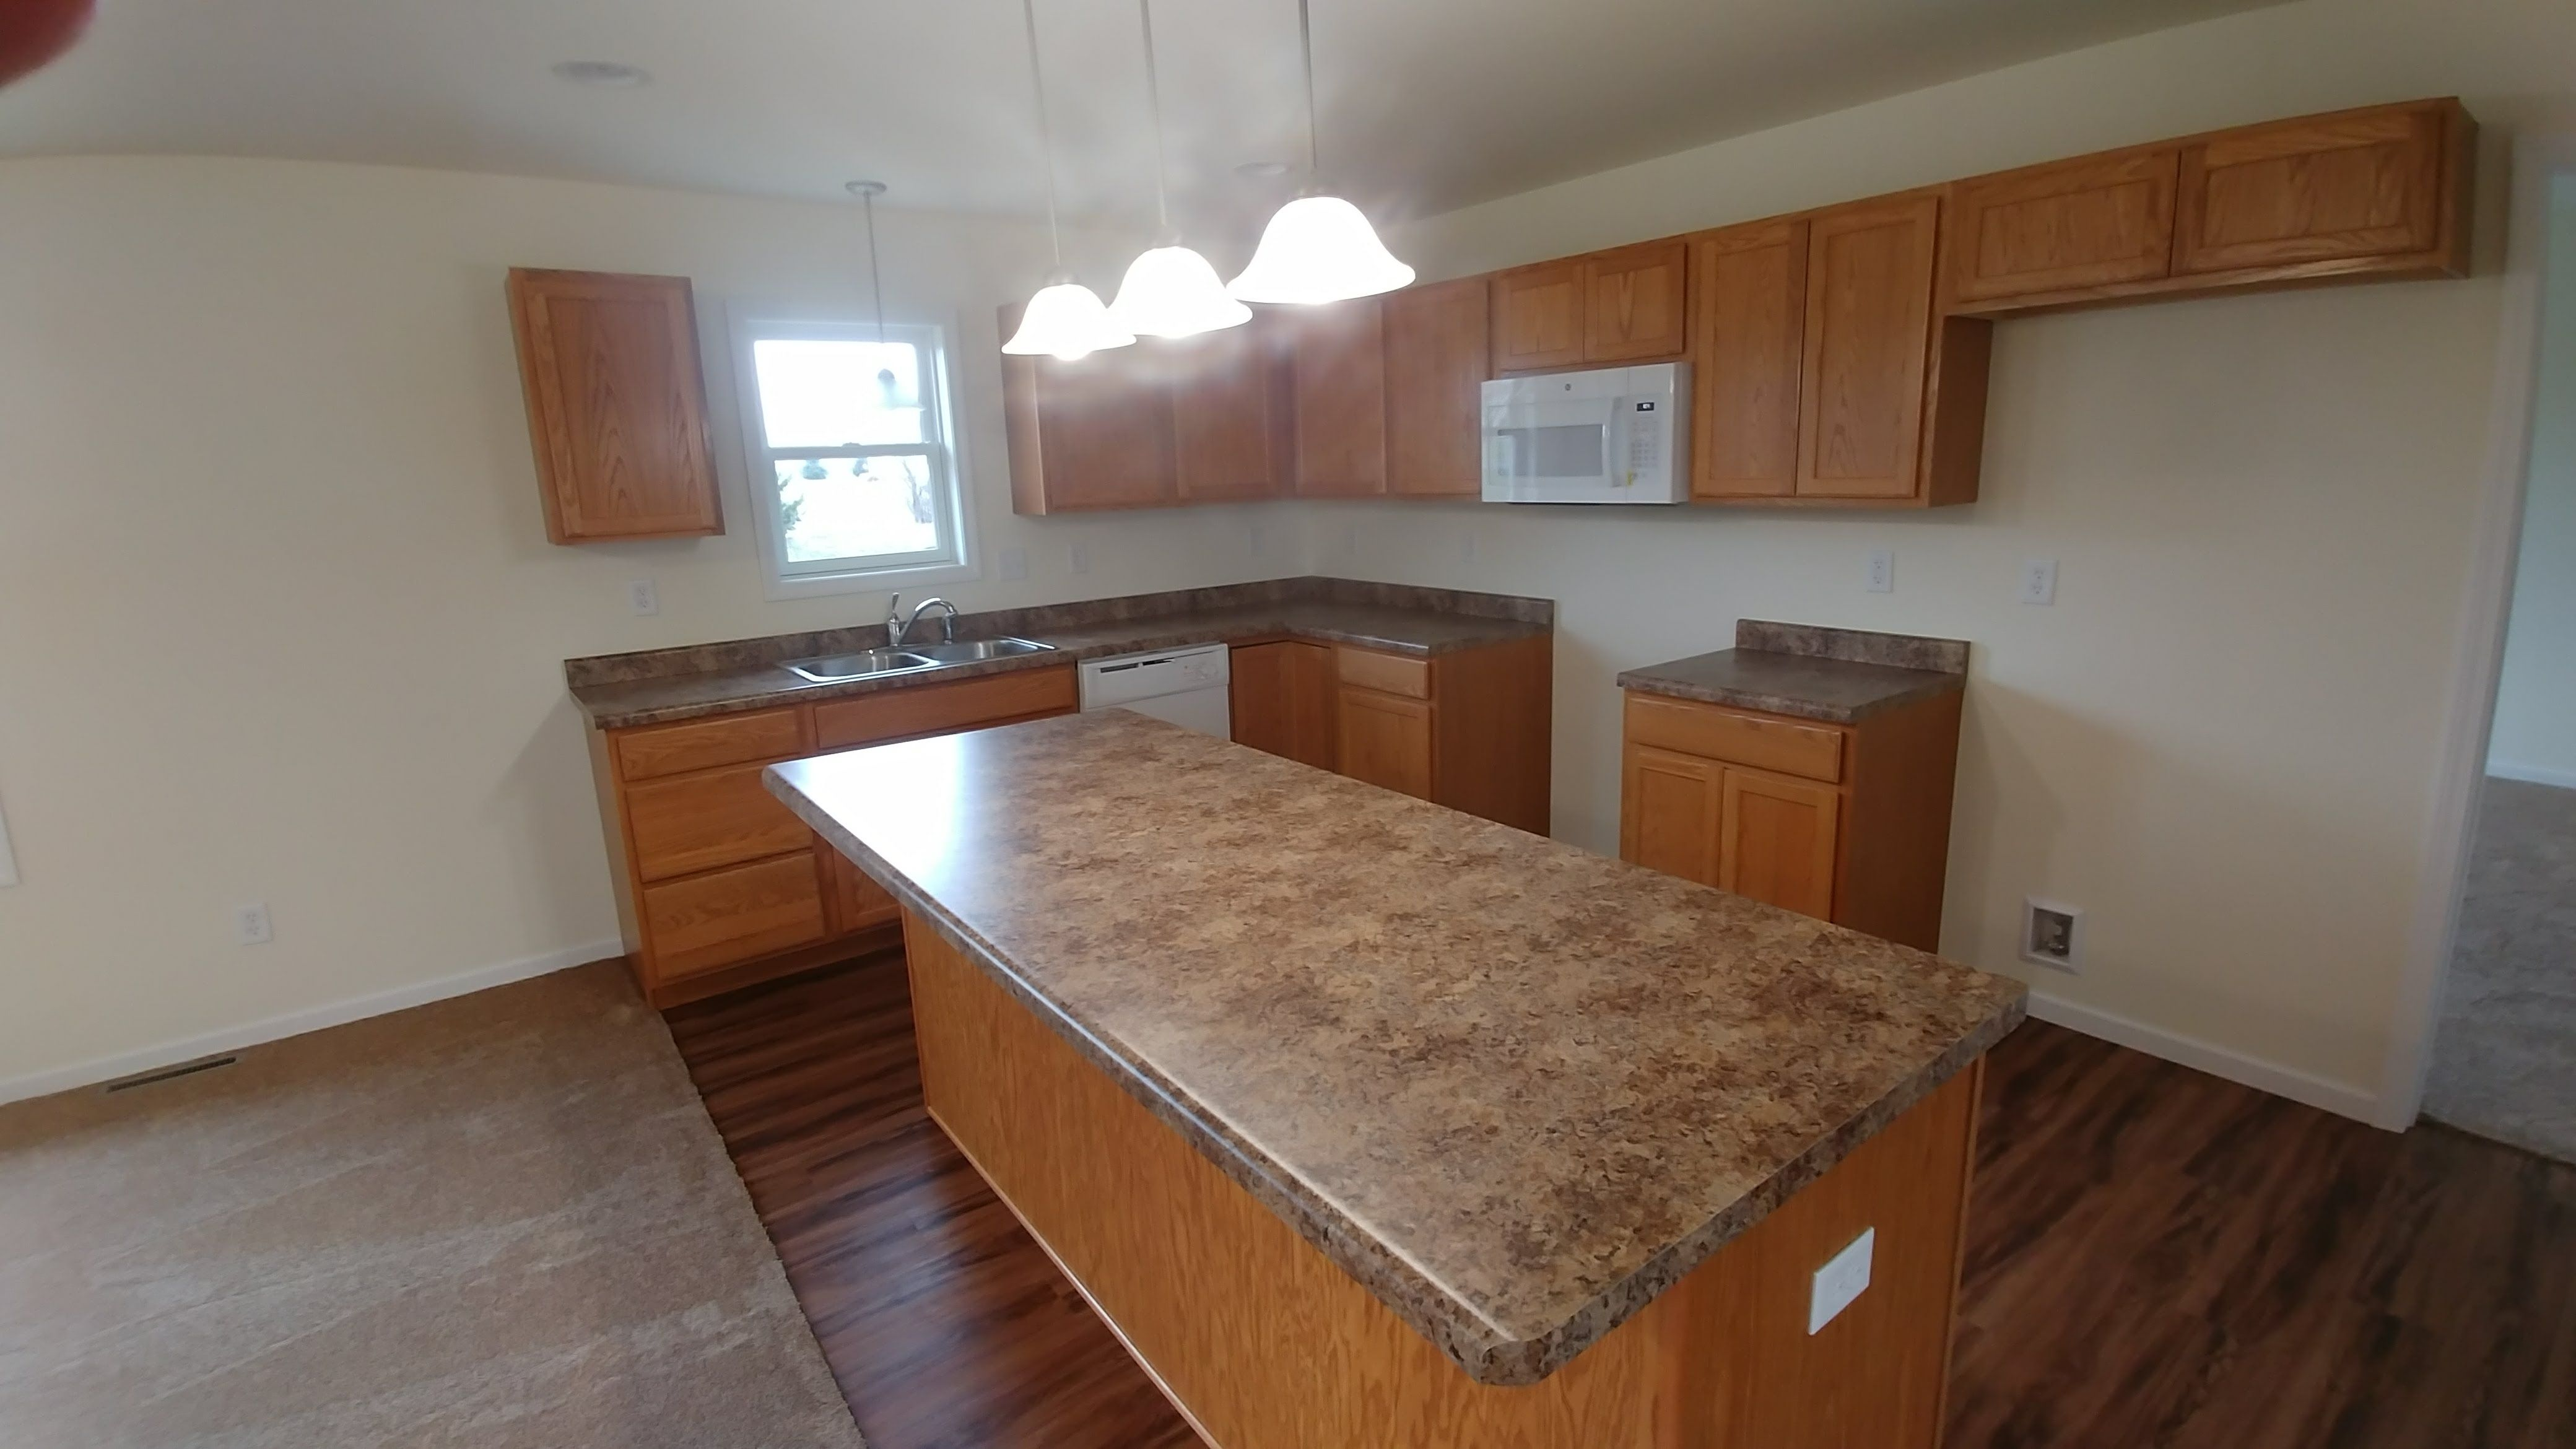 Kitchen featured in the Cheyenne II By Accent Homes Inc. in Gary, IN